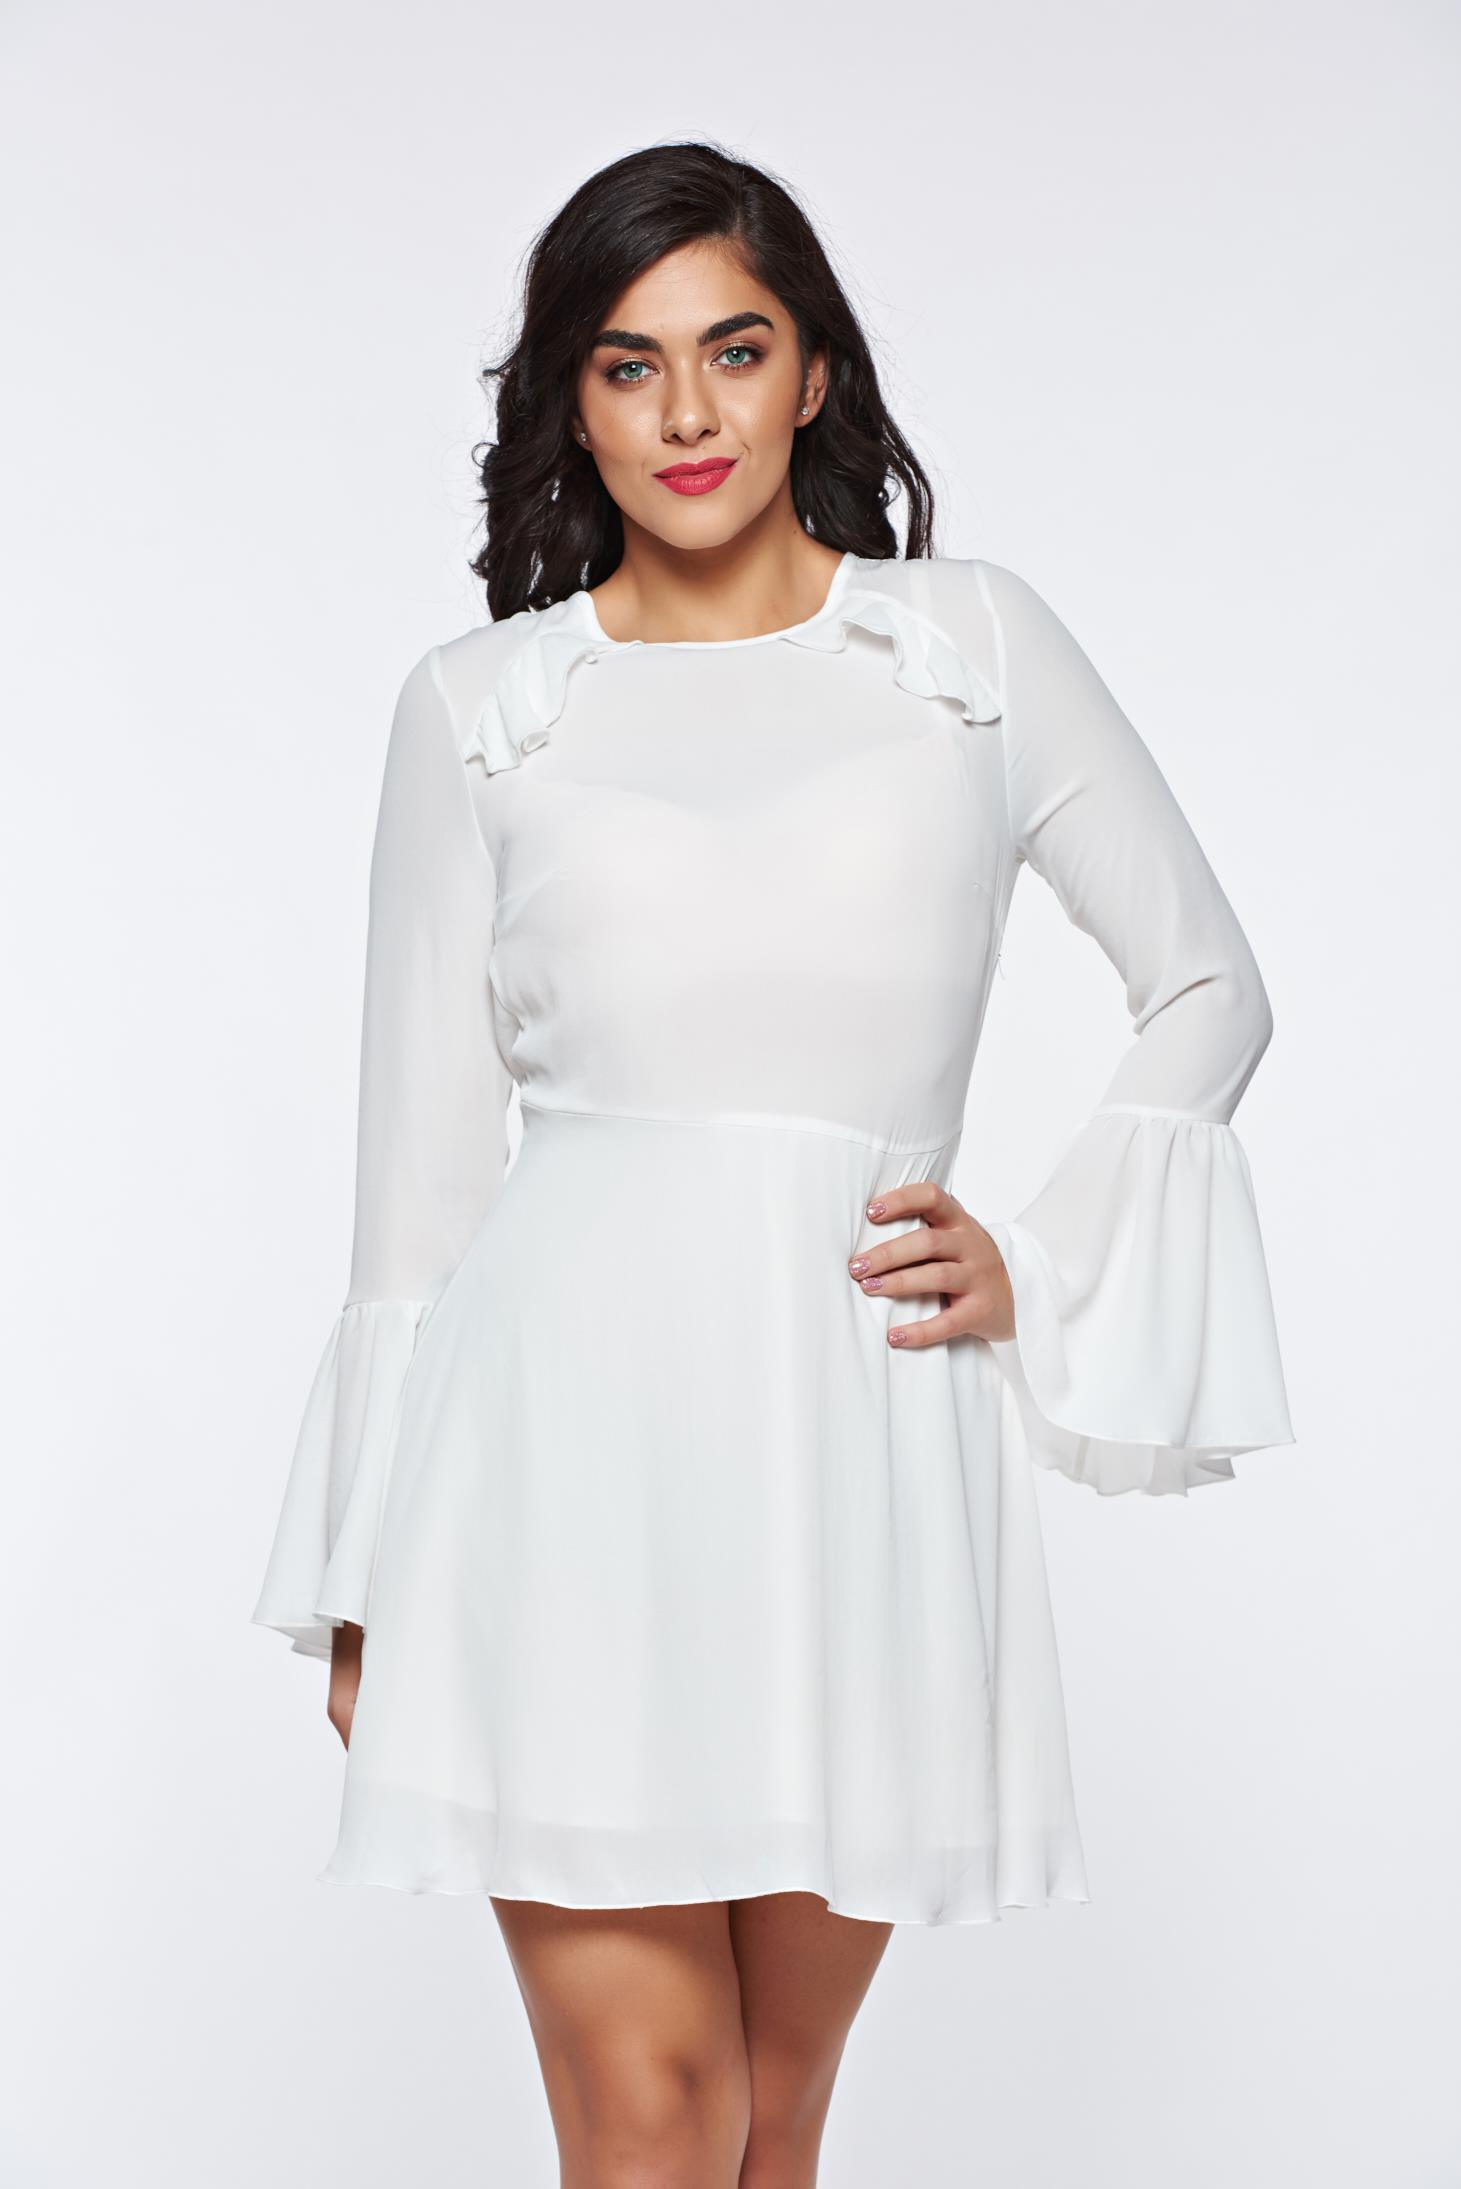 PrettyGirl white dress bare back voile fabric with bell sleeve with inside lining